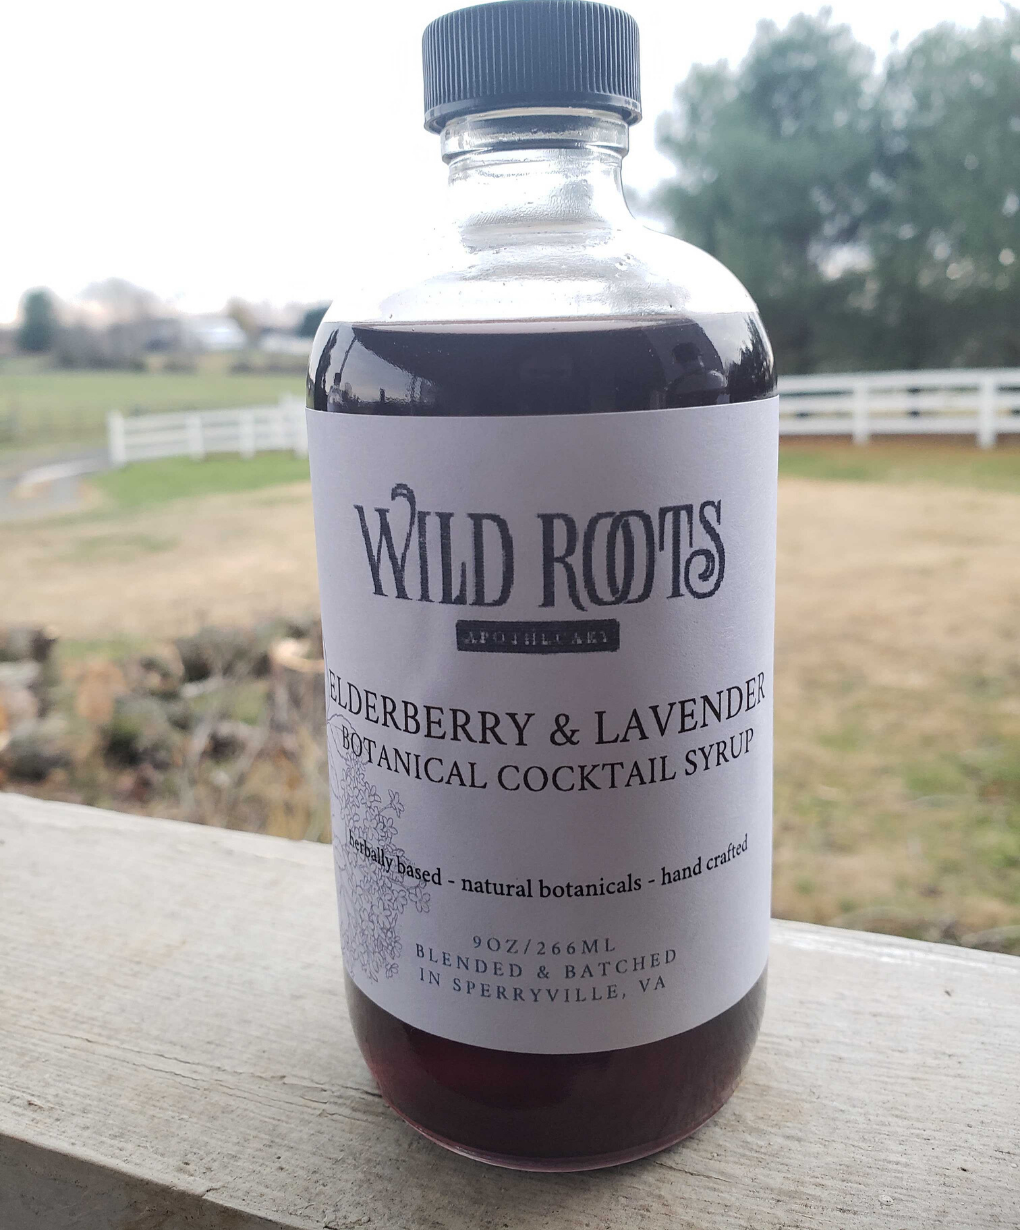 Elderberry_Lavender_Botanical_Syrup_Wild_Roots_Apothecary